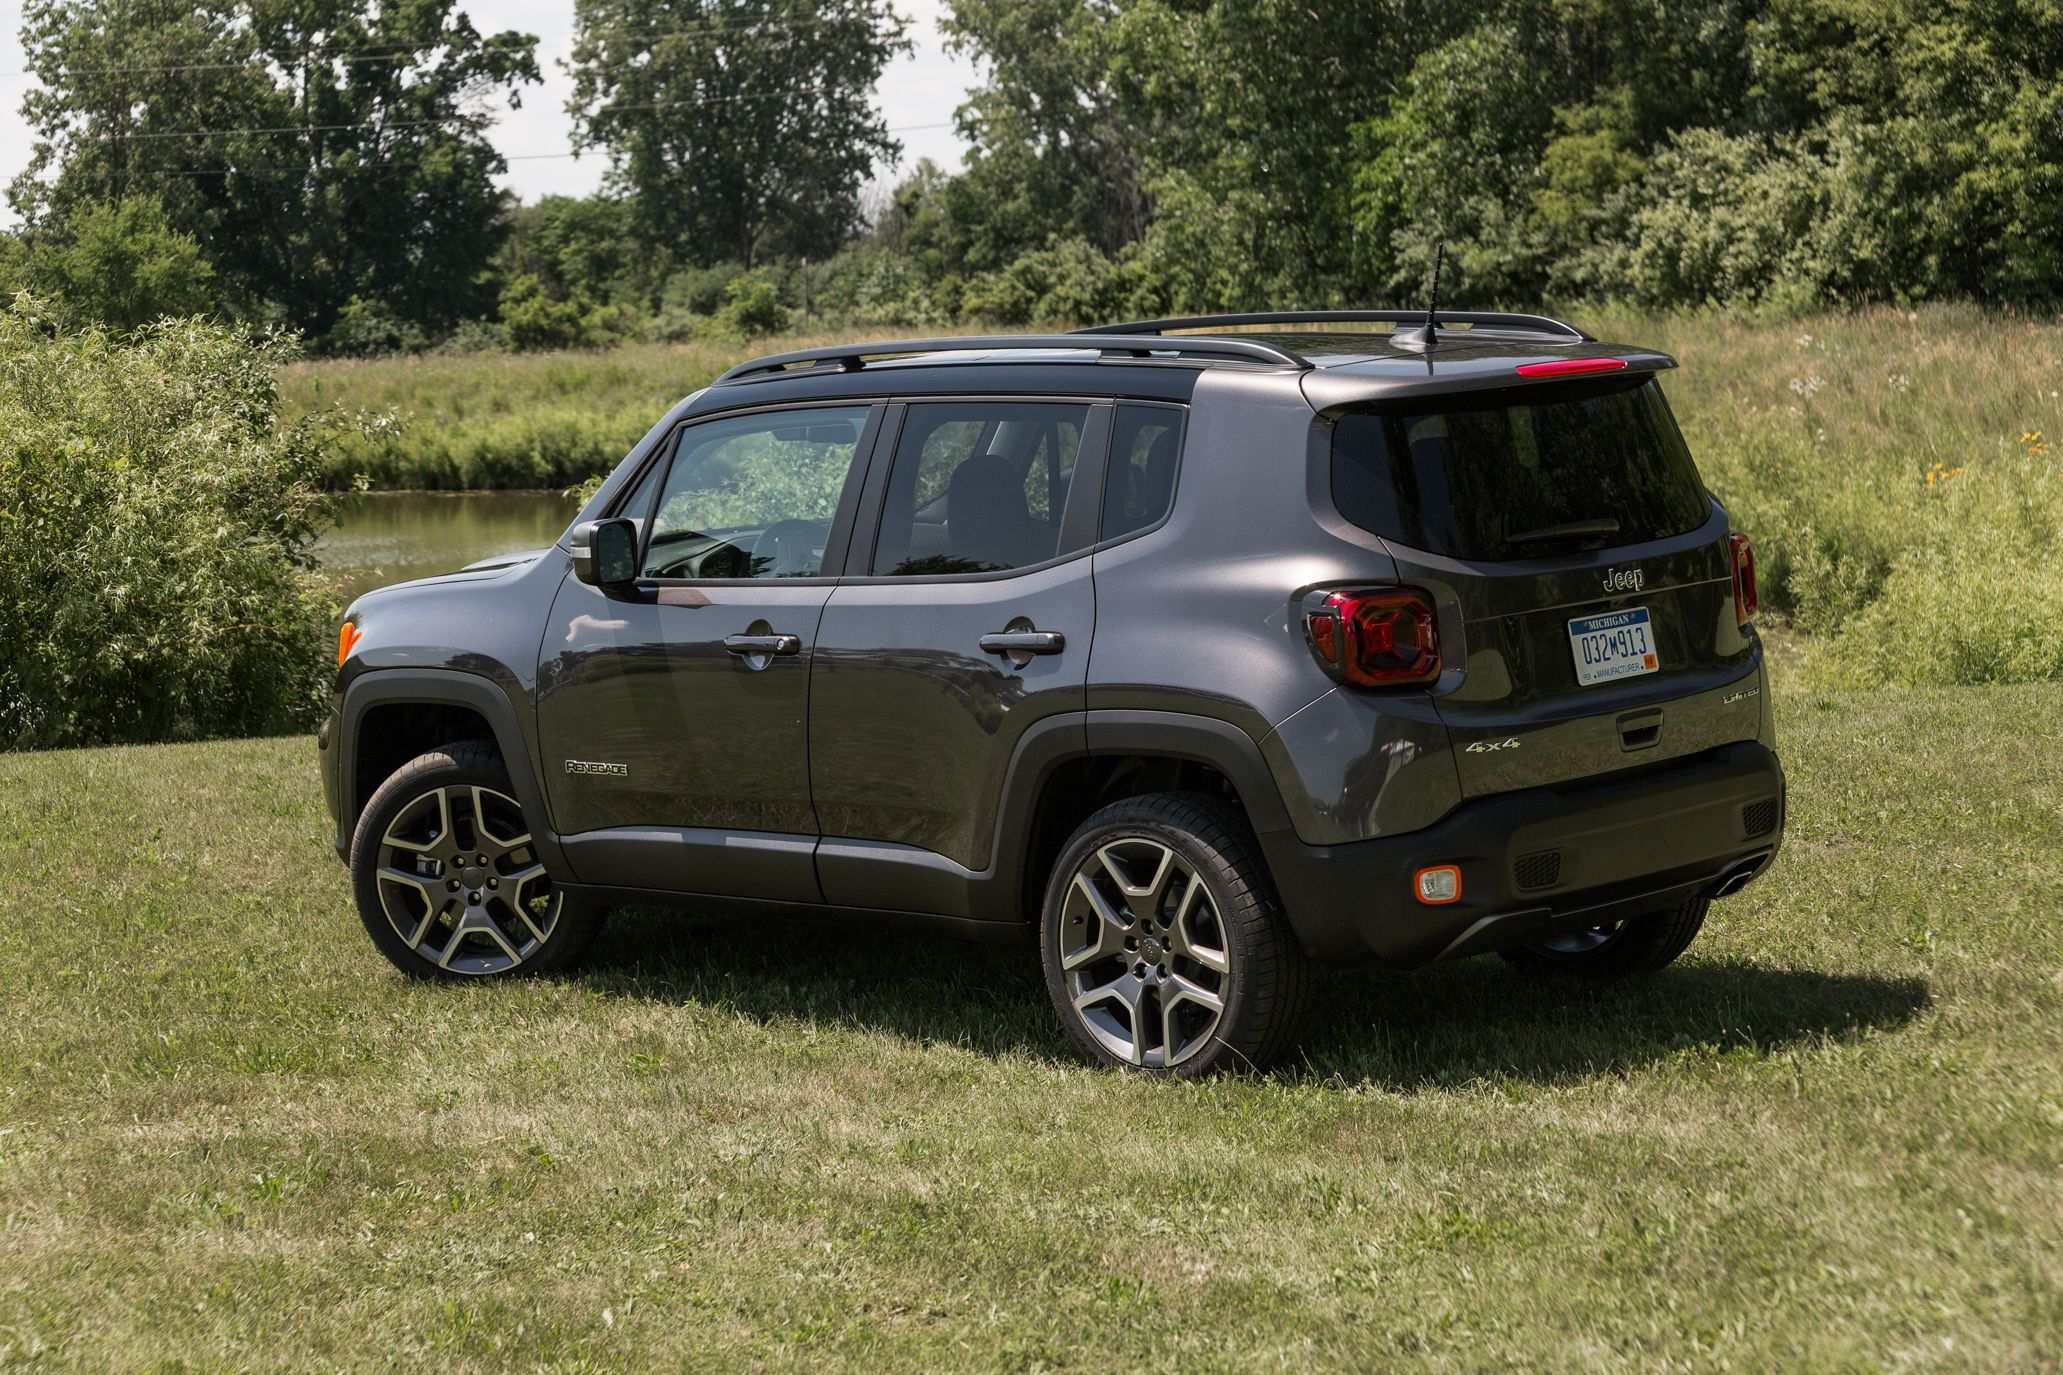 27 All New 2019 Jeep Renegade Review Research New by 2019 Jeep Renegade Review